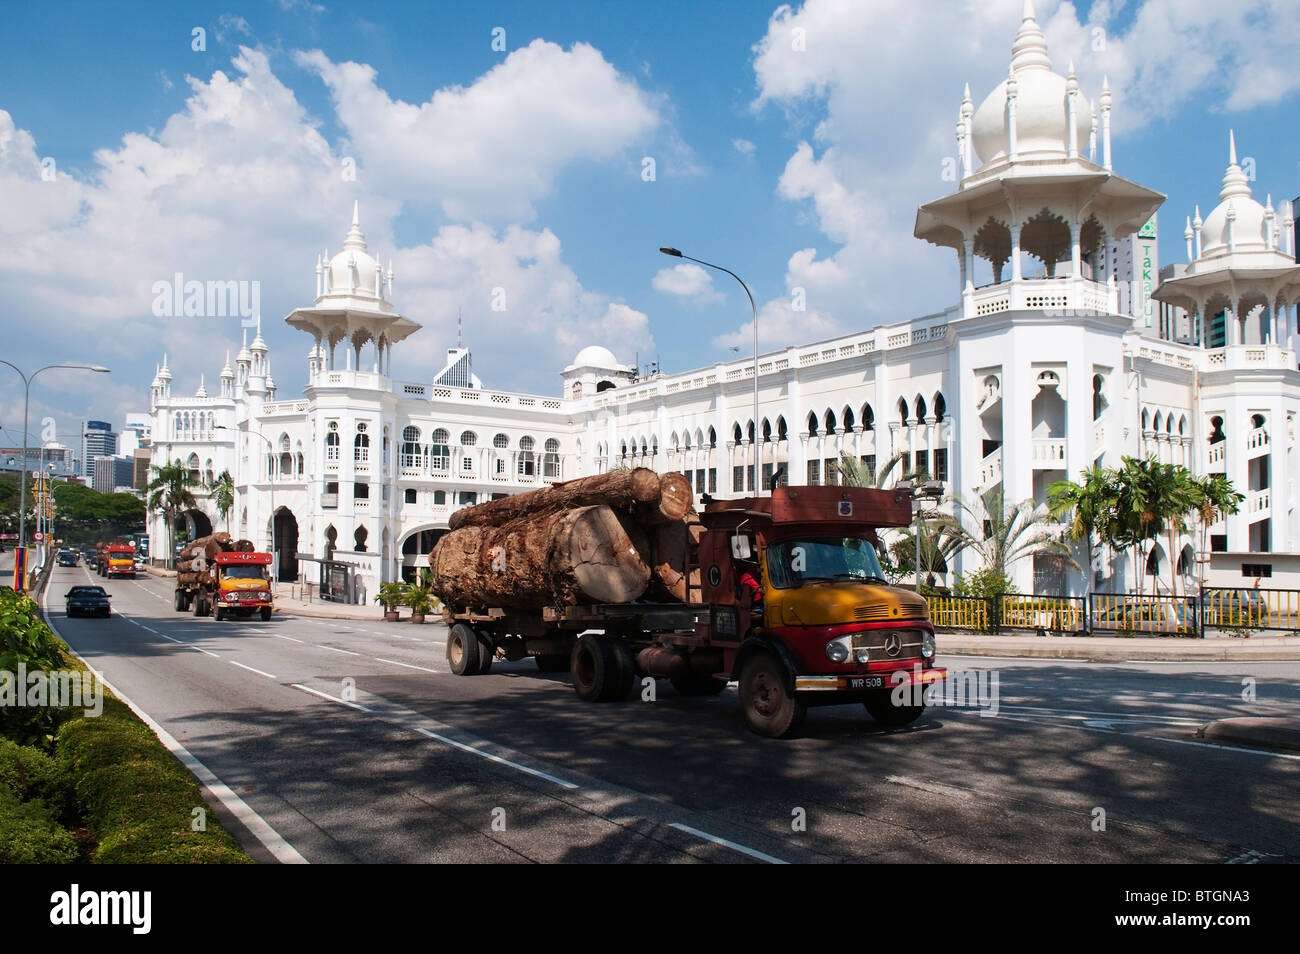 Logging trucks driving in front of the Moorish and Mogul inspired Old KL Train Station from 1911 in Kuala Lumpur, - Stock Image